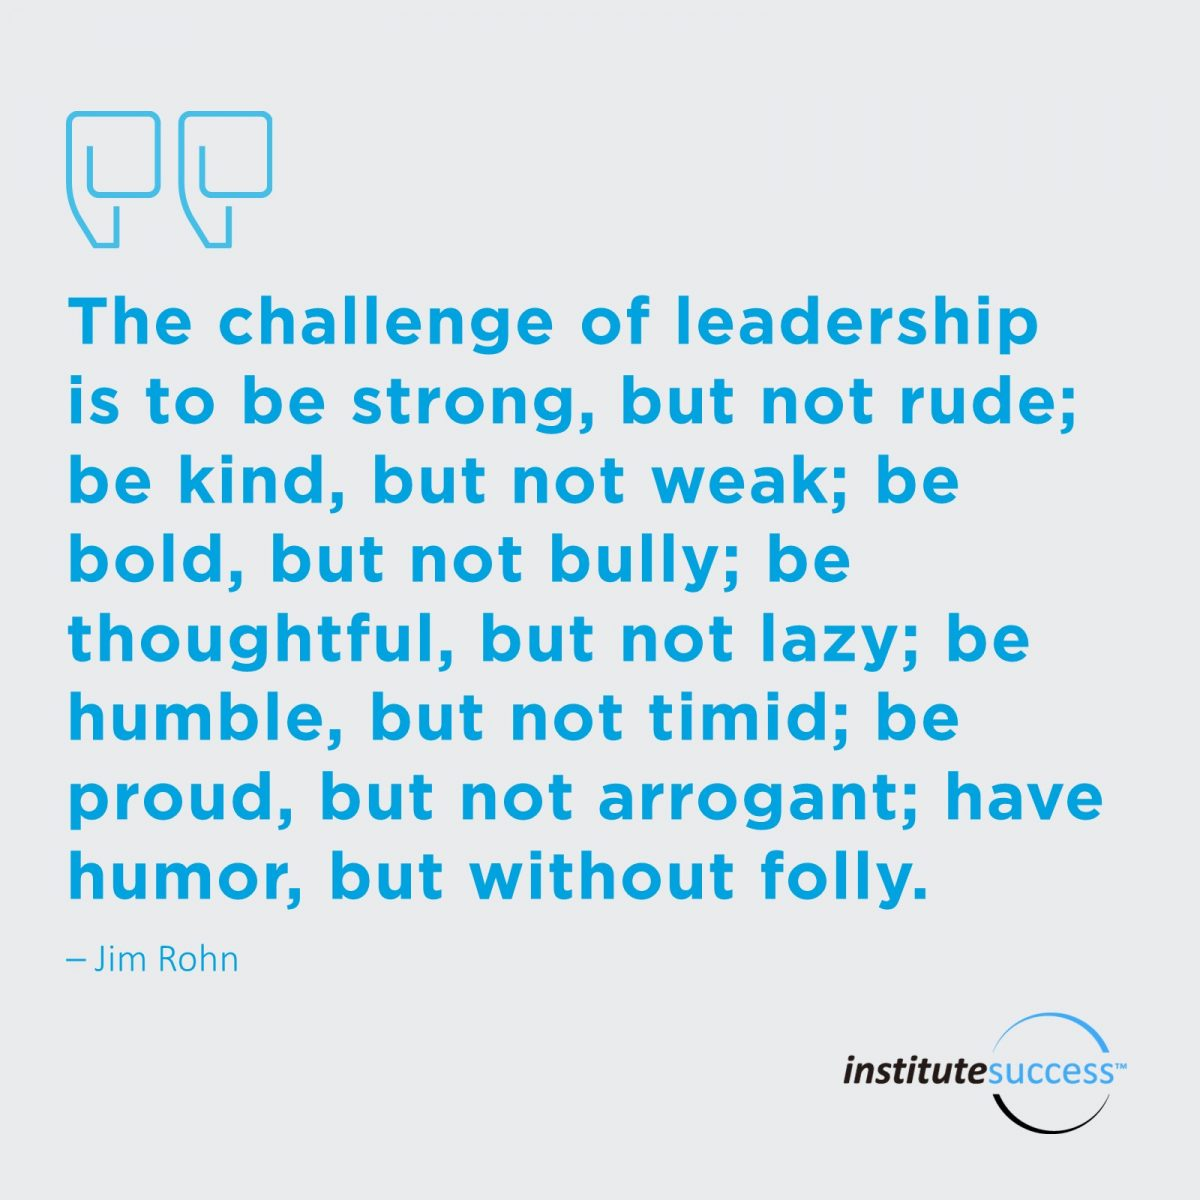 The challenge of leadership is to be strong, but not rude; be kind, but not weak; be bold, but not bully; be thoughtful, but not lazy; be humble, but not timid; be proud, but not arrogant; have humor, but without folly. – Rohn